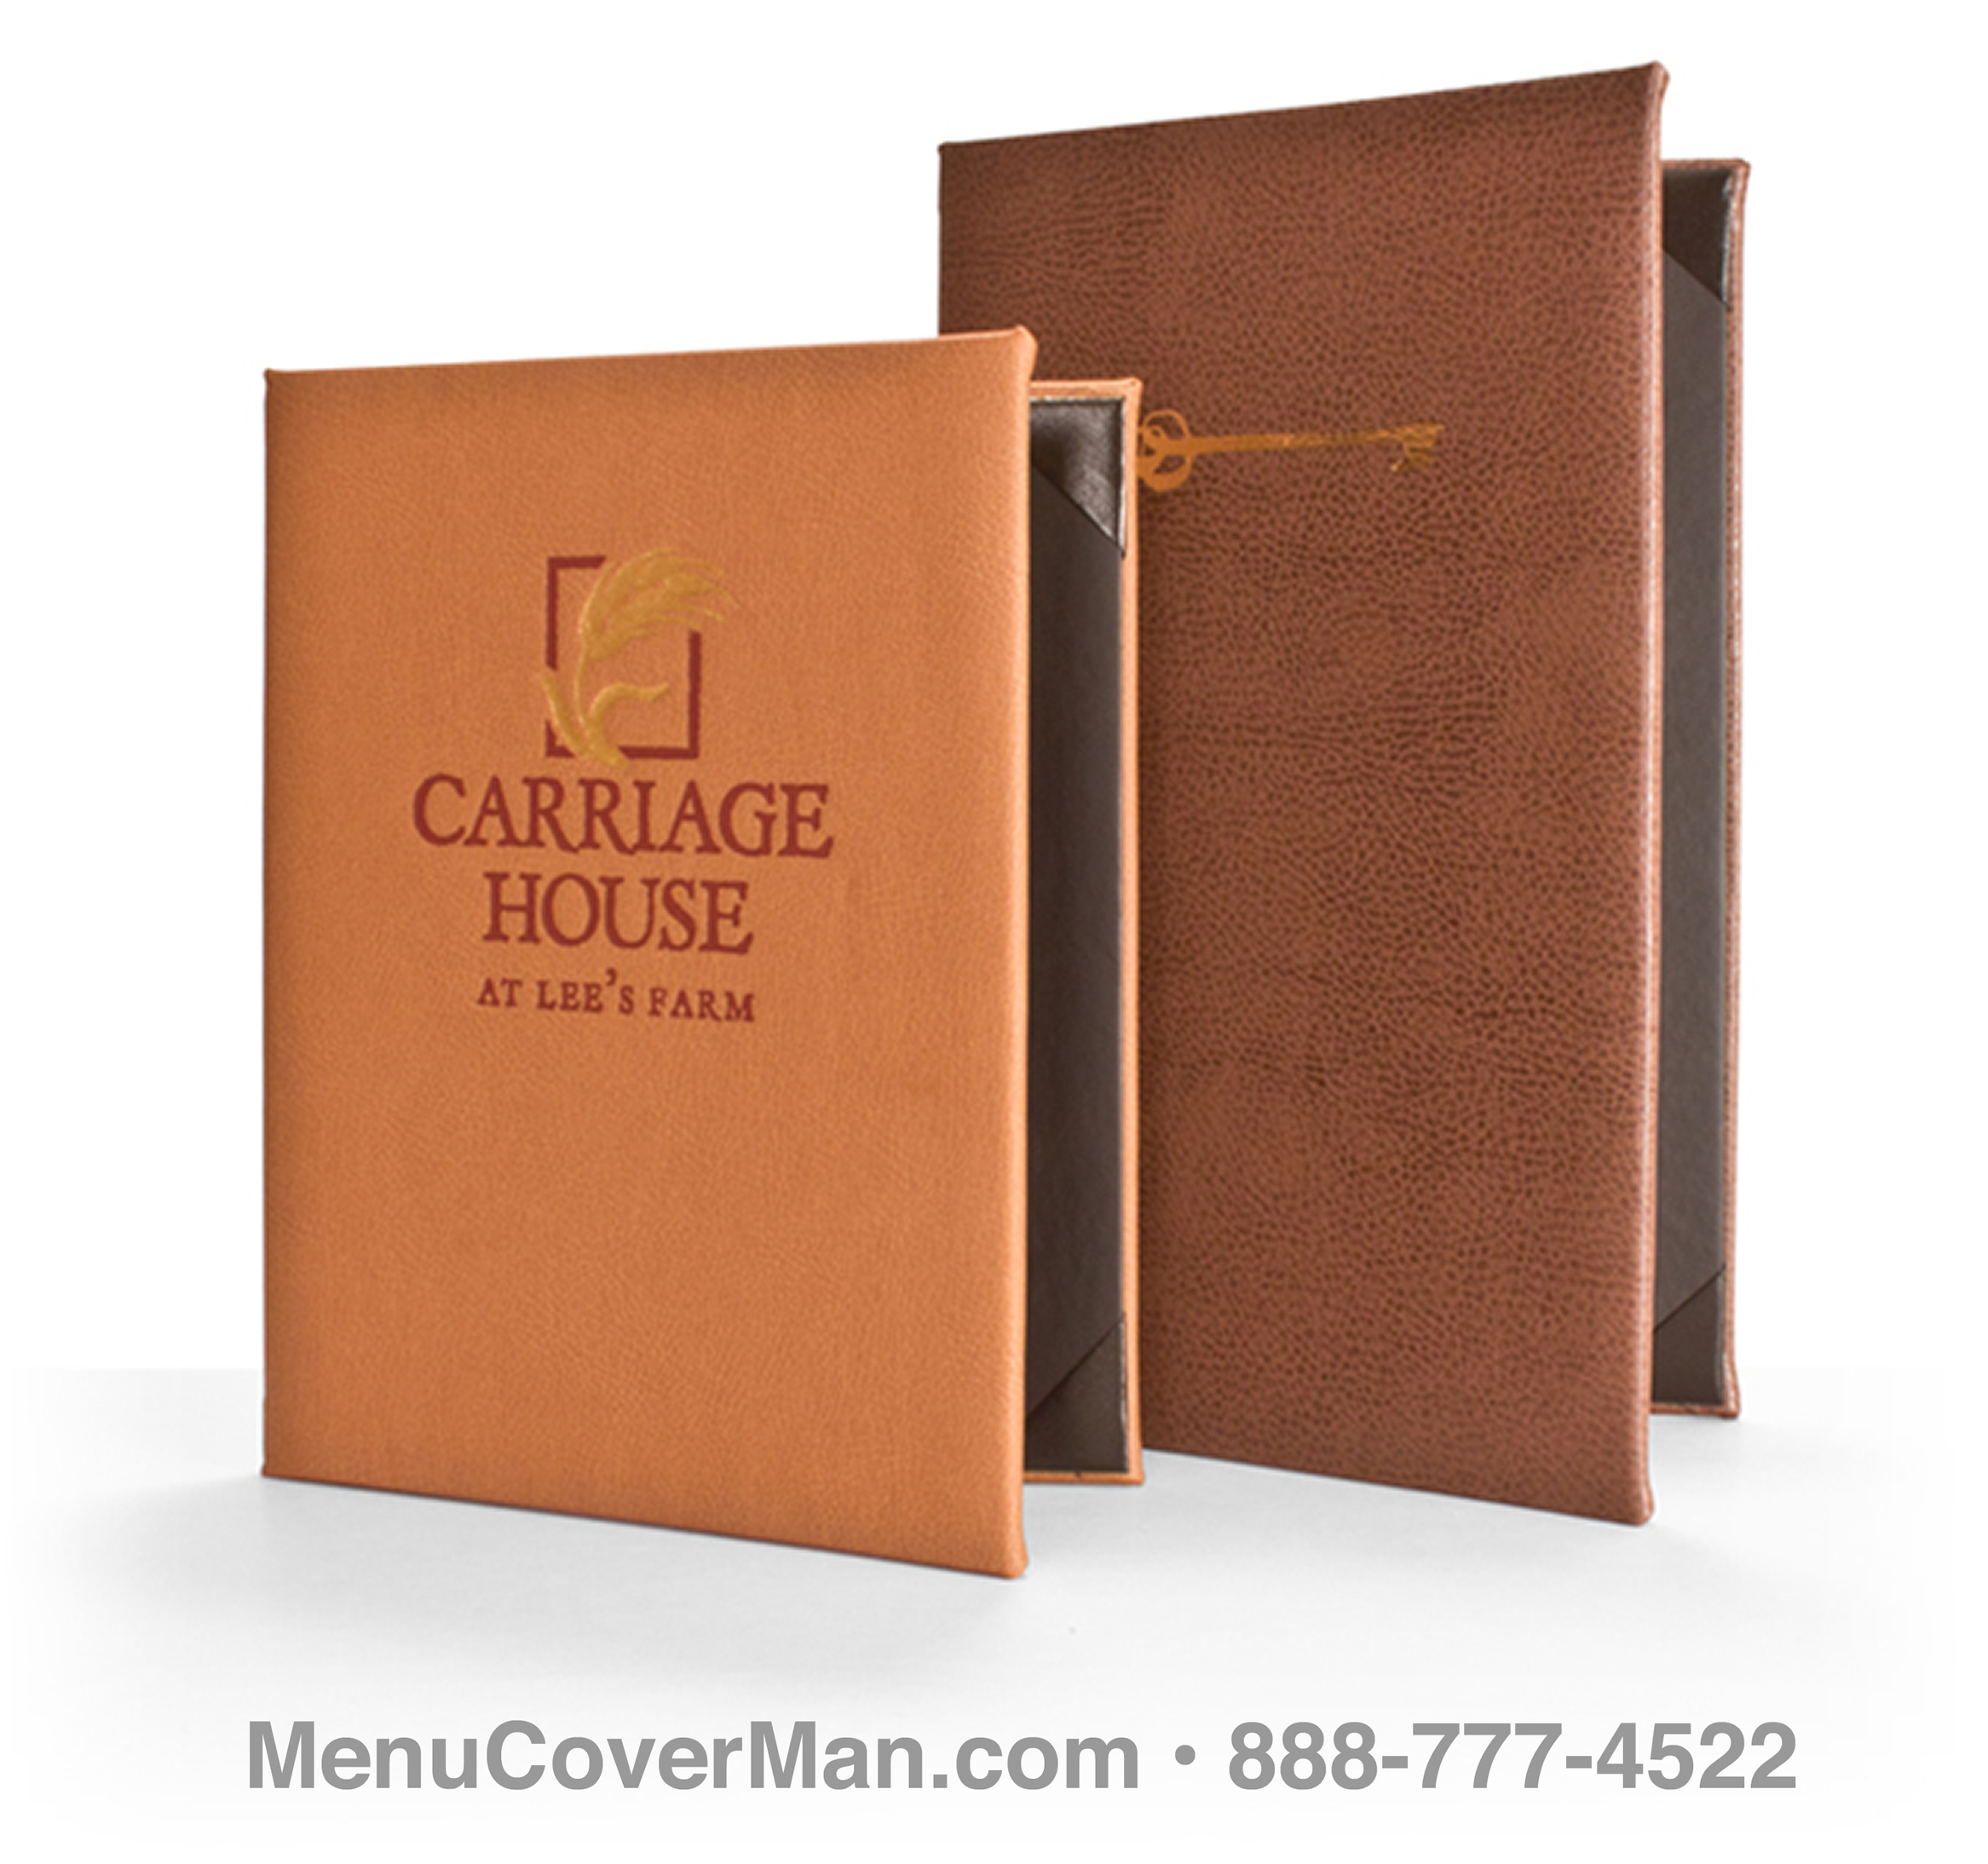 Sedona Menu Covers Frontspiece